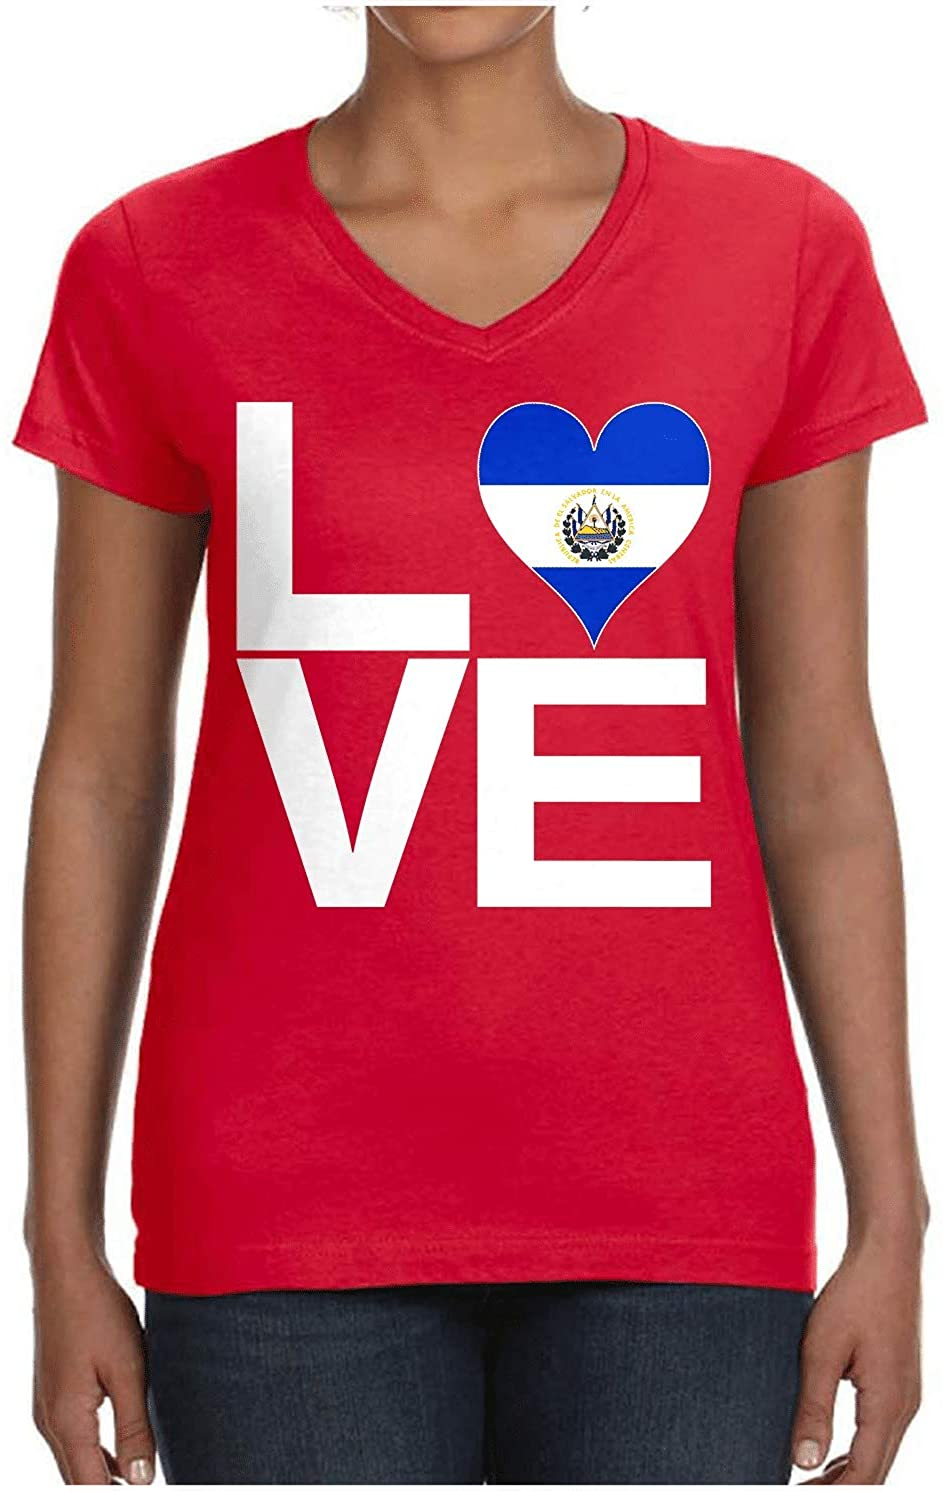 HARD EDGE DESIGN Ladies Love Block El Salvador Heart V Neck T-Shirt, Medium, Red